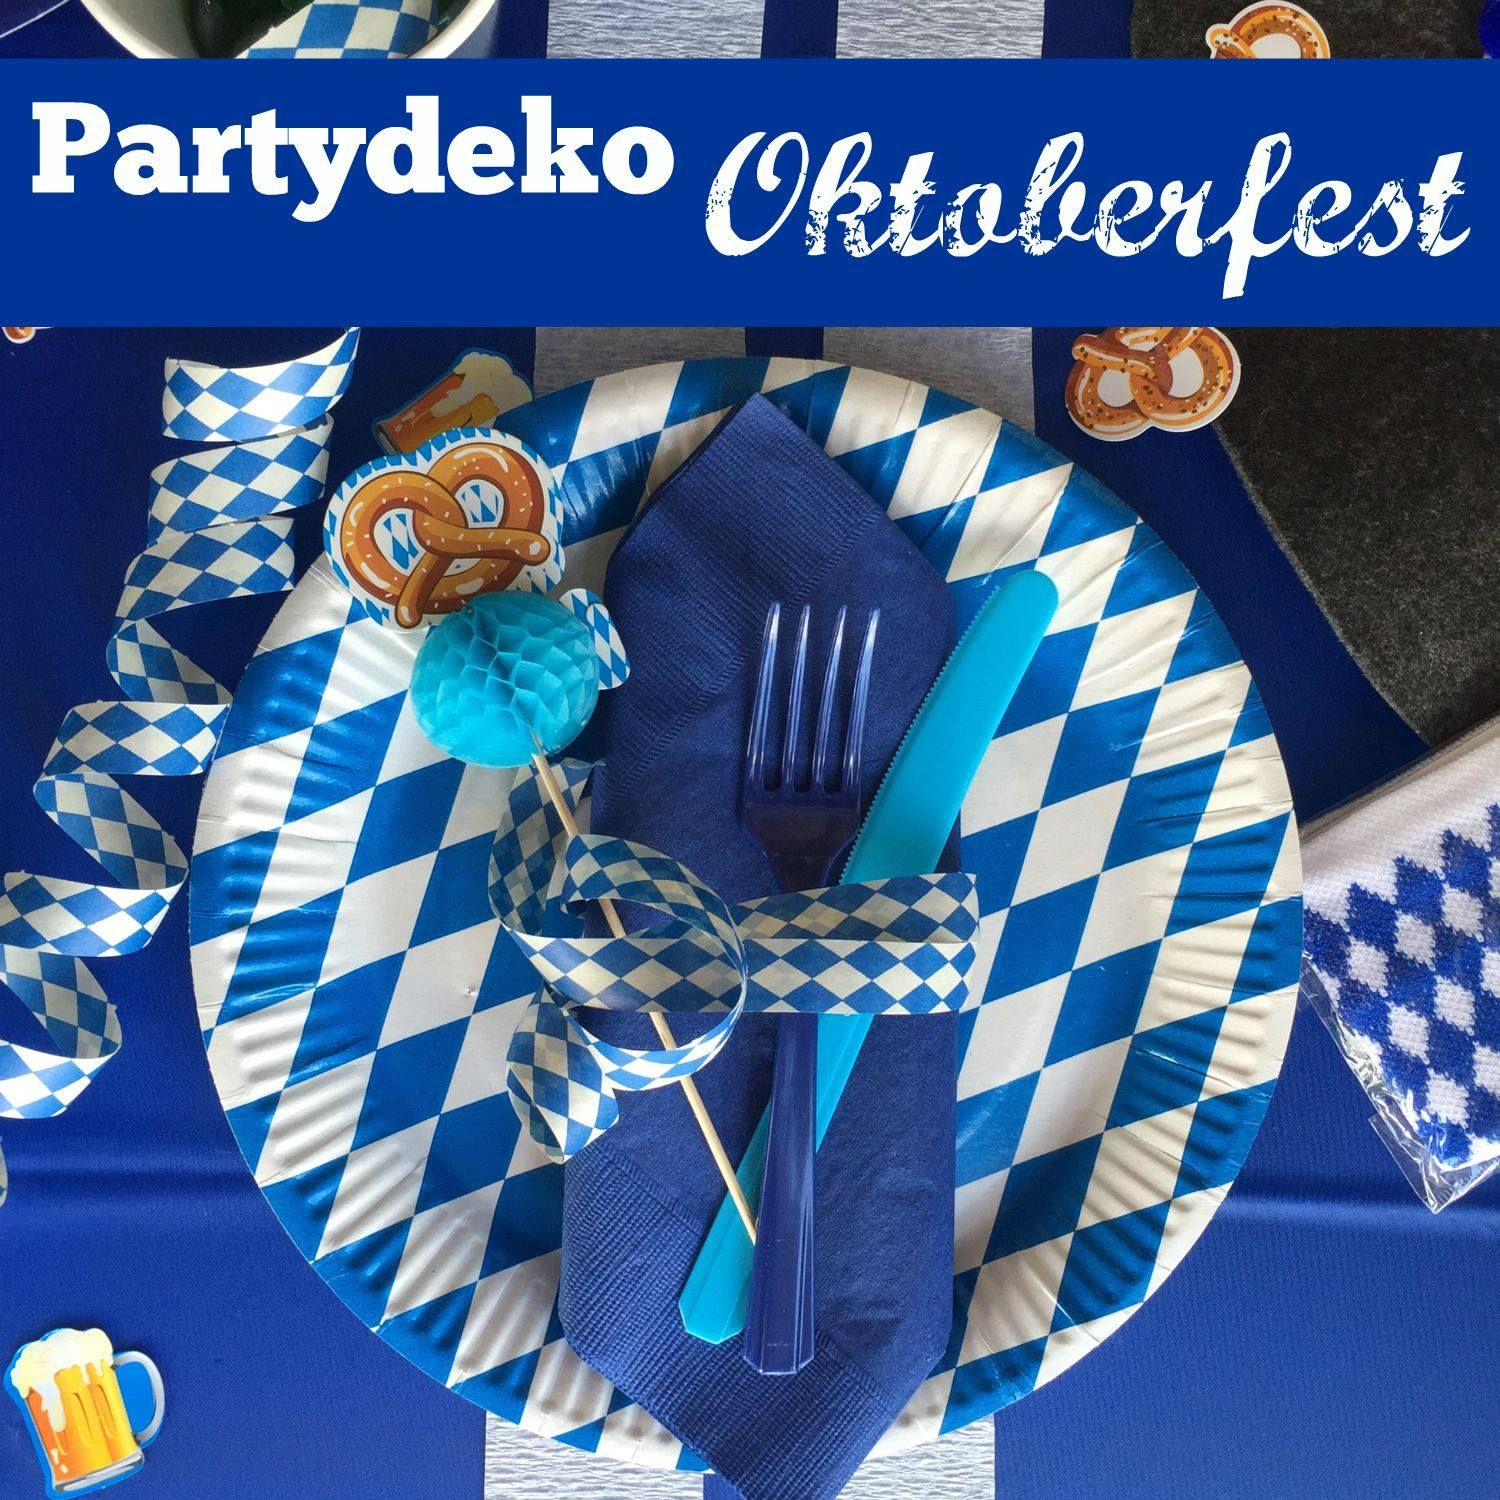 oktoberfest deko in weiss blau oktoberfest party ideen. Black Bedroom Furniture Sets. Home Design Ideas